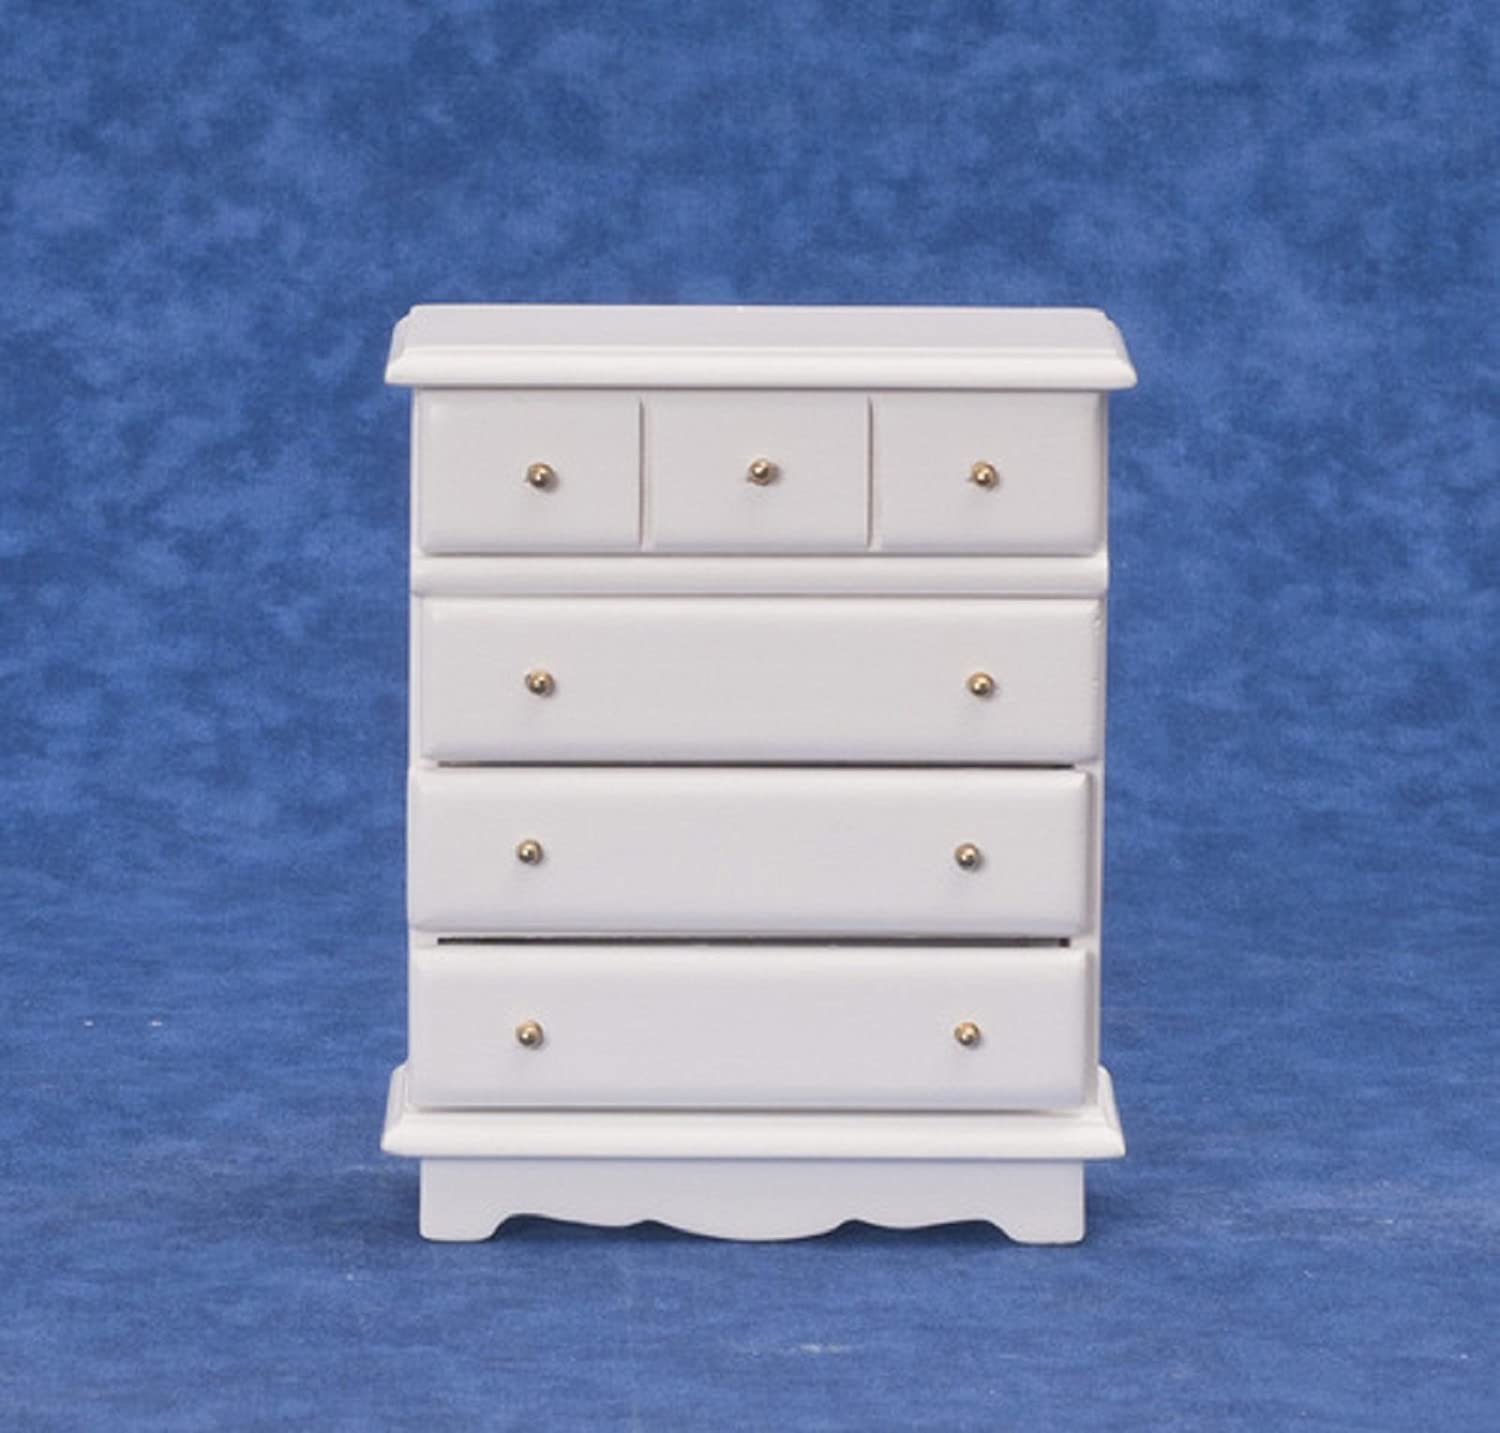 Dollhouse Miniature 1:12 Scale 3 Drawer Wardrobe #12072MH Any Room